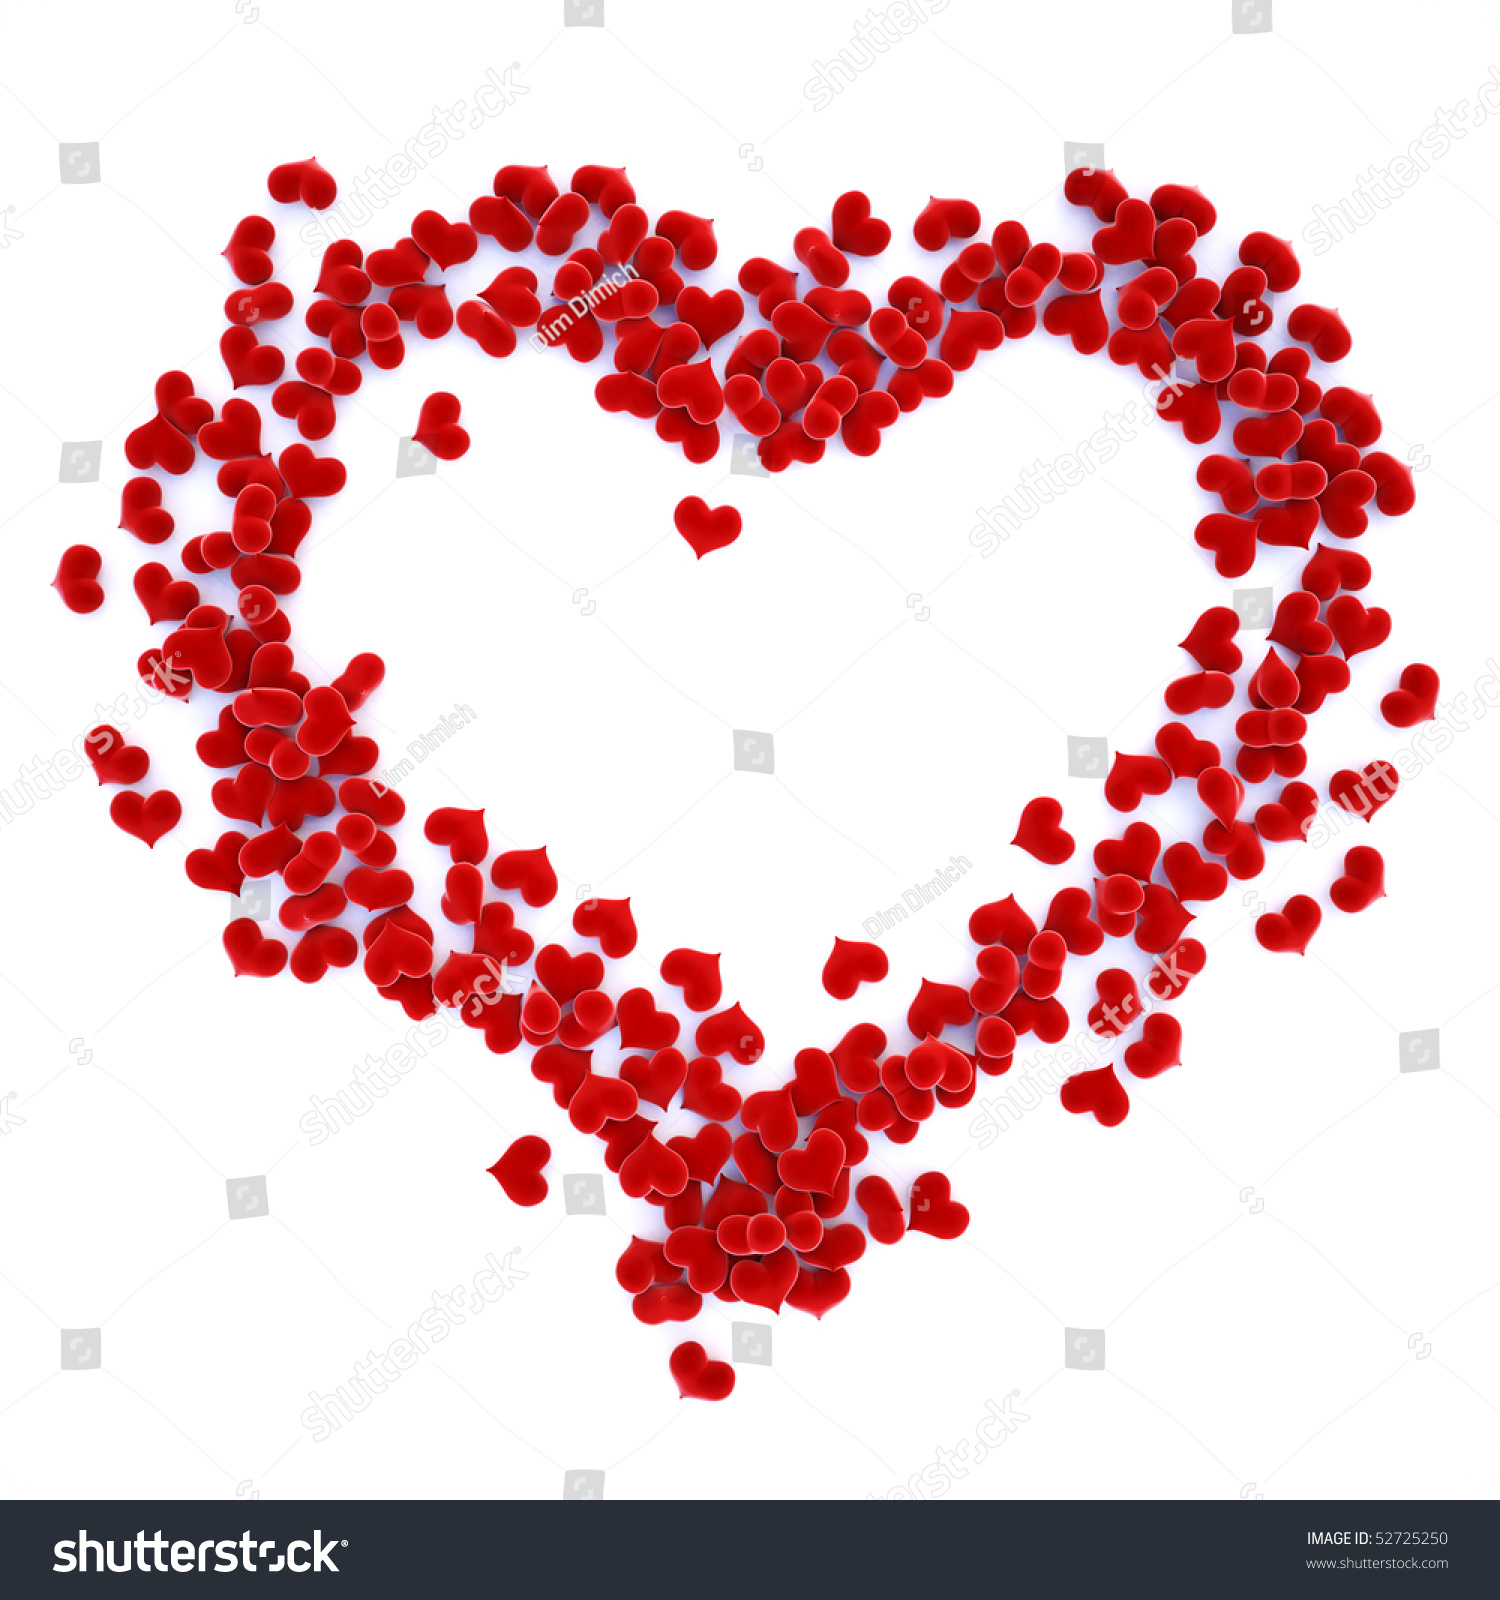 Red gift bows border with clipping path for easy background removing - Hearts Velvet Lined As A Symbol Of The Heart With Clipping Path